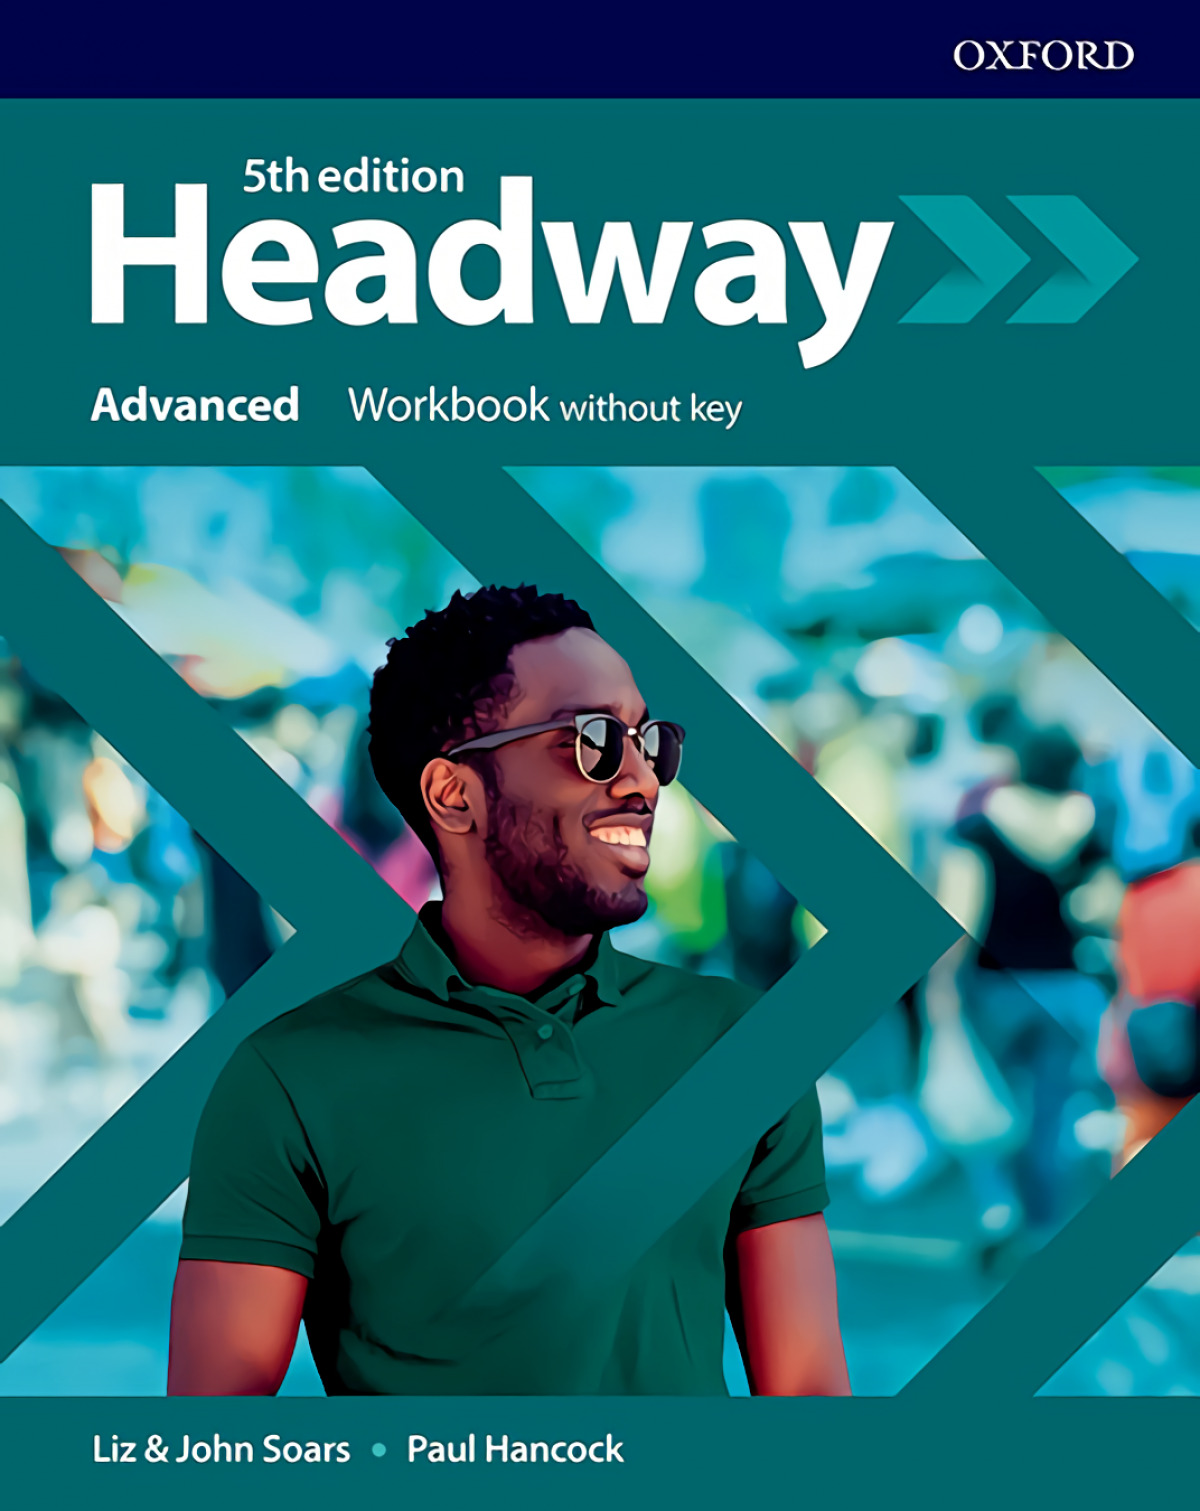 (19).HEADWAY ADVANCED (-KEY WORKBOOK) (5TH.EDITION)